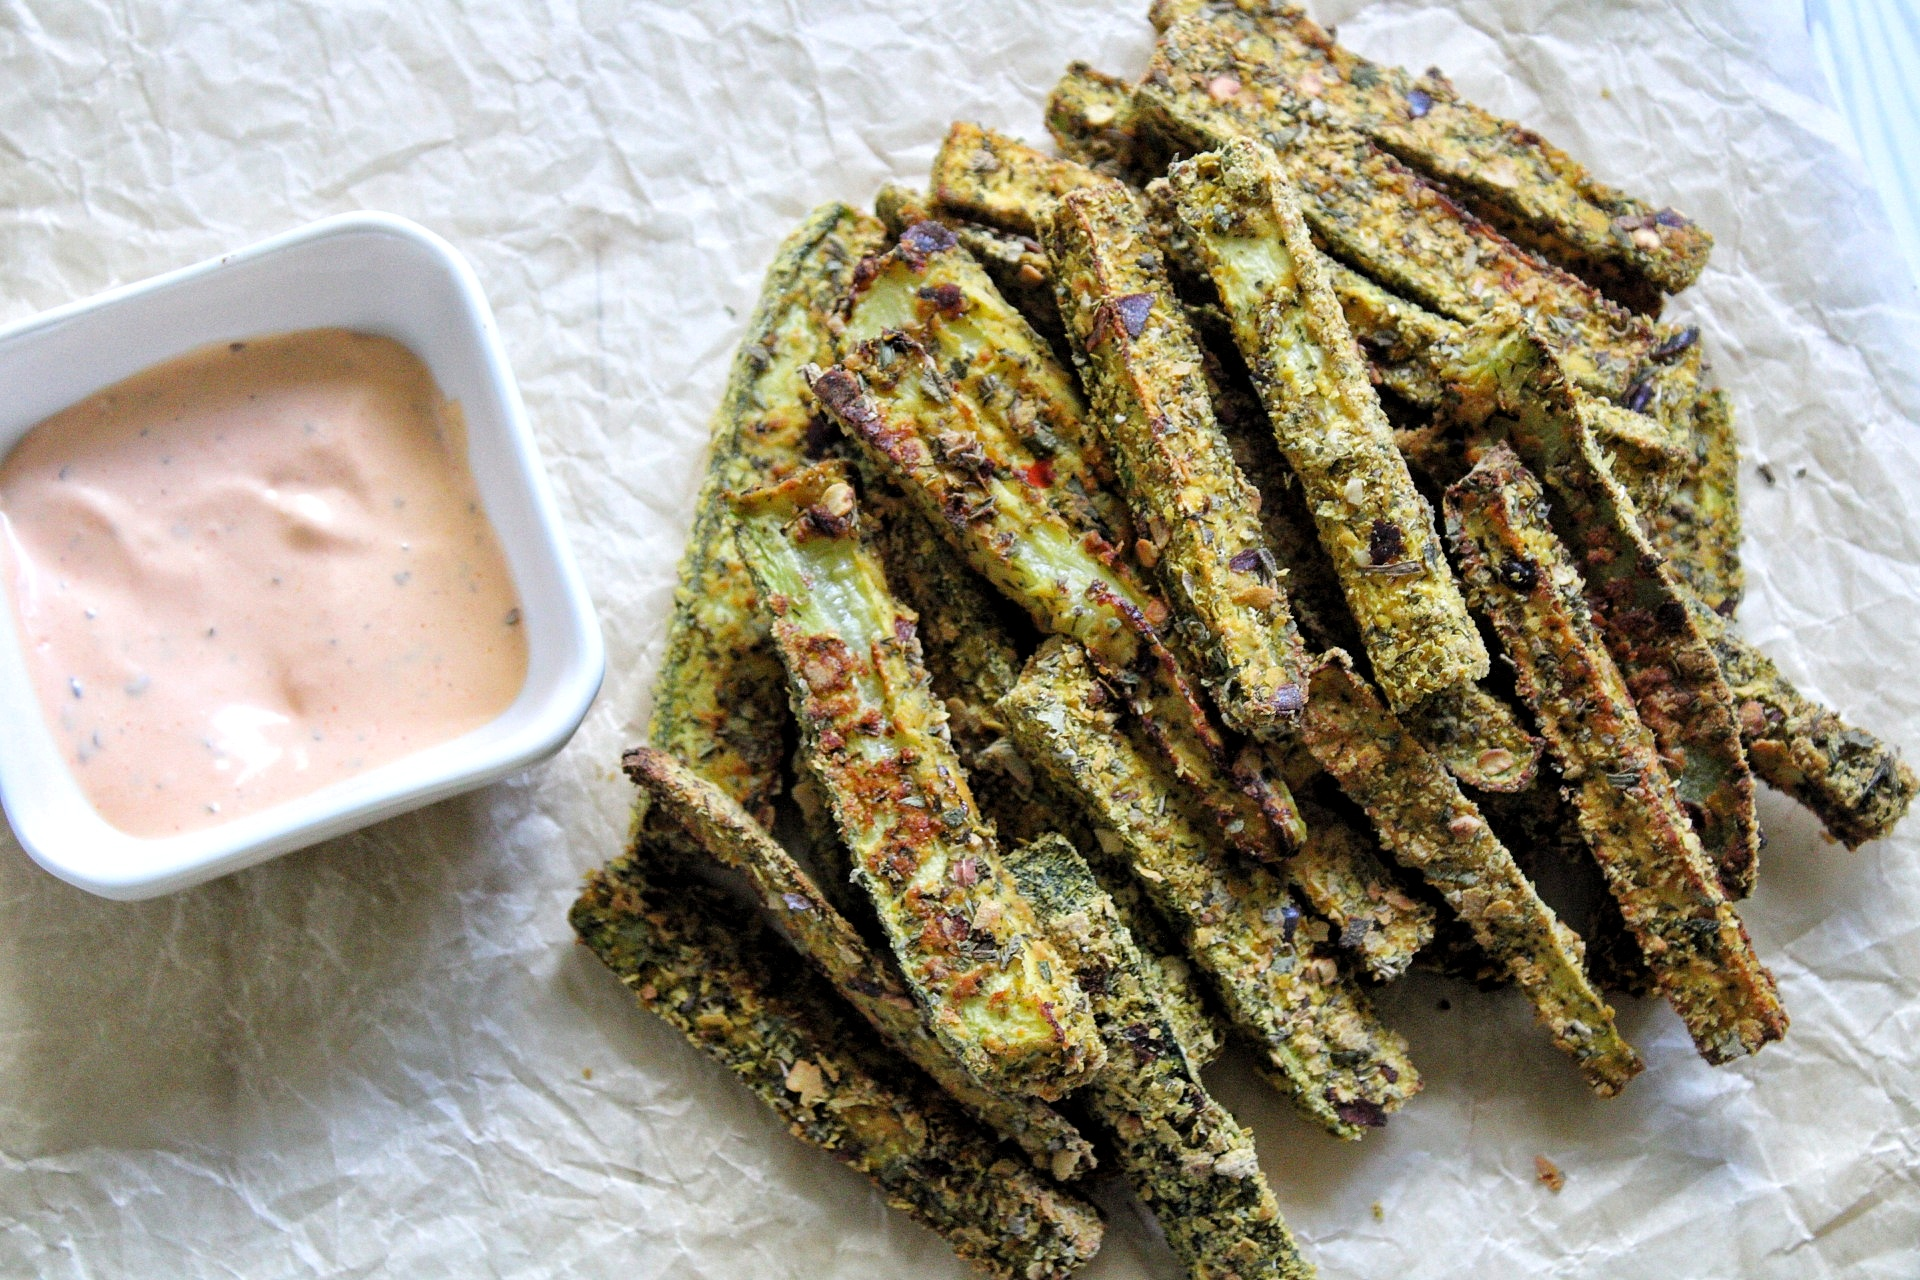 Baked zuchini fries on parchment paper with a side of dipping sauce